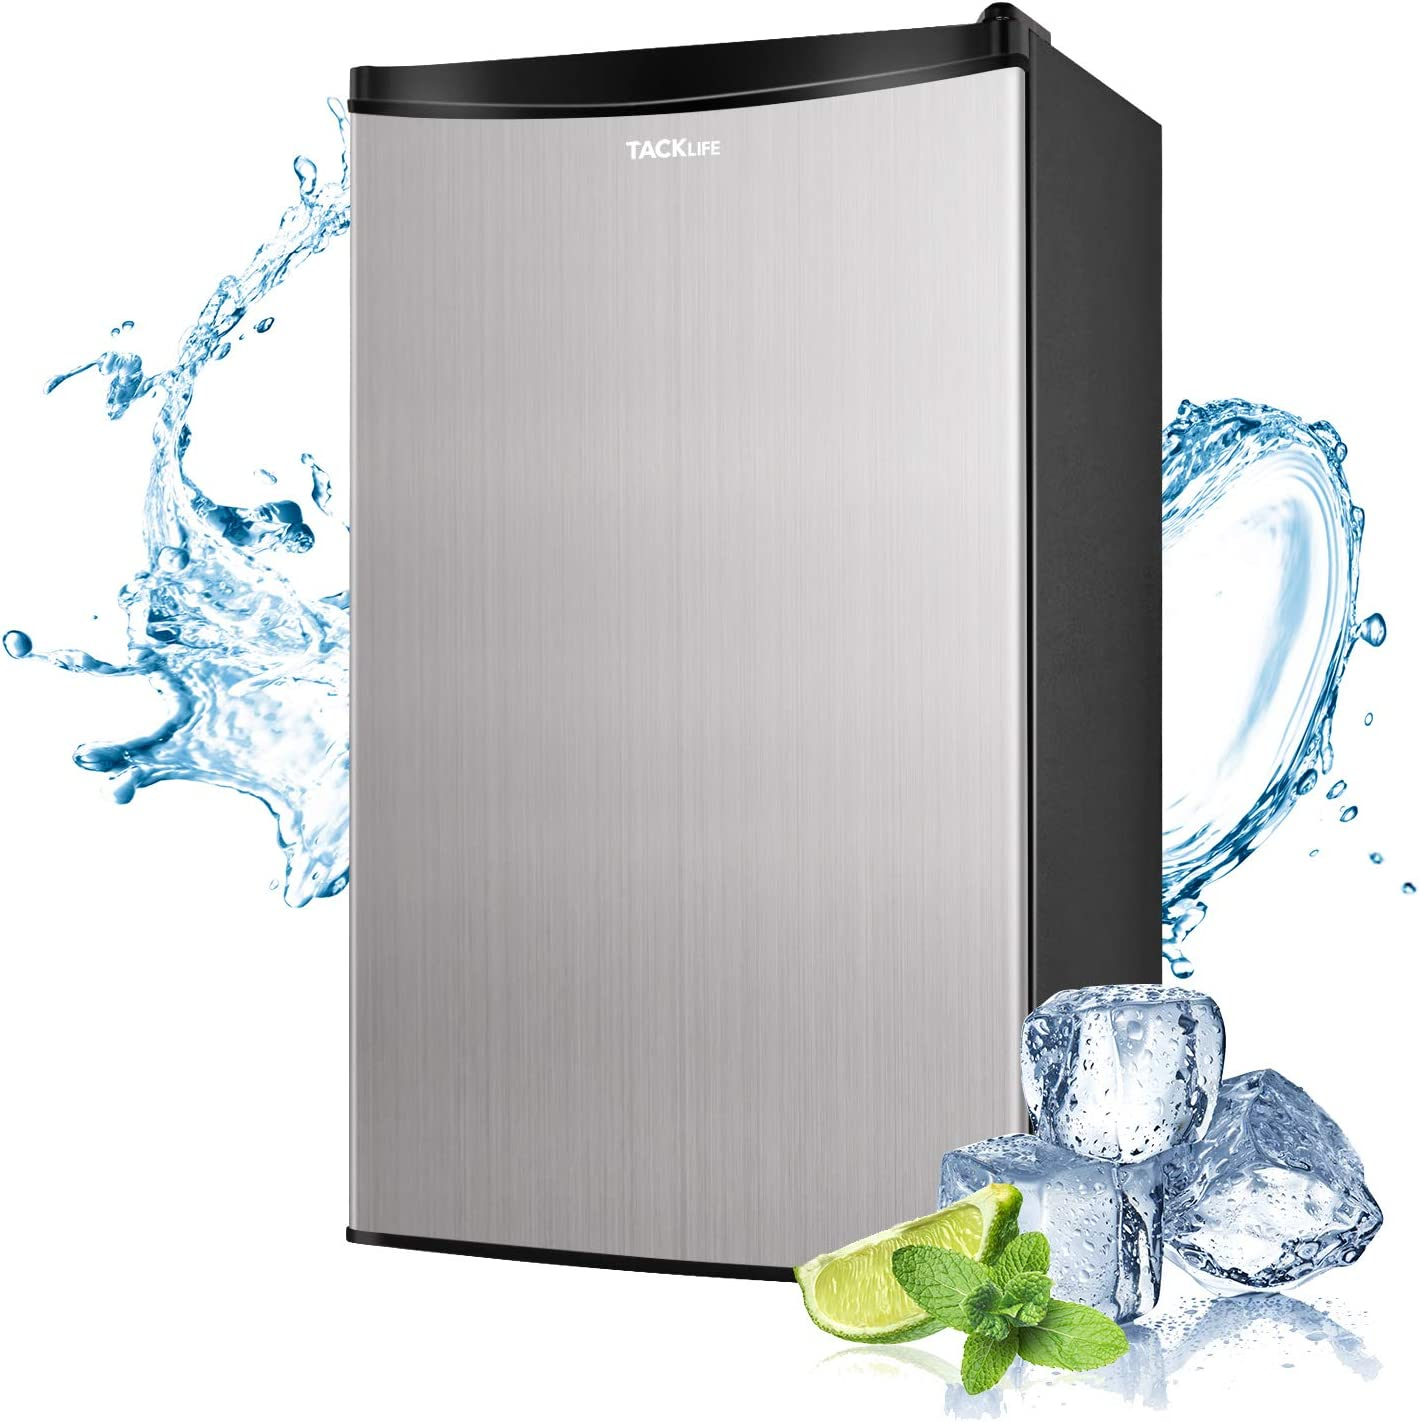 2 Door Mini Fridge with Freezer 3.1 Cu.Ft Compact refrigerator Ideal Small Refrigerator for Bedroom Energy Star Office With LED Light RV HPVFR310 Dorm Stainless Steel